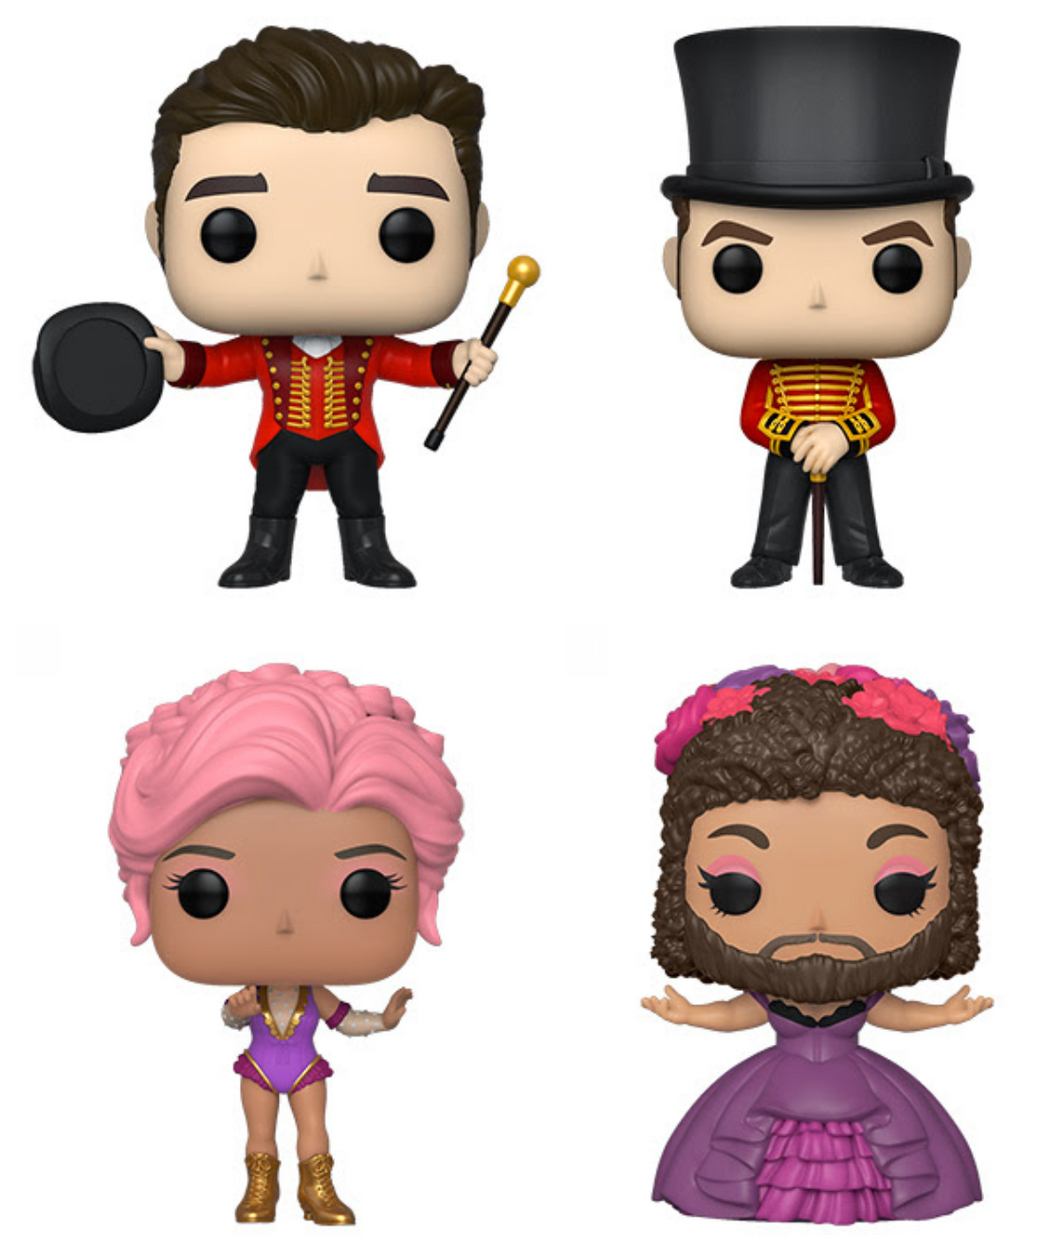 Pop! Movies: The Greatest Showman - Bundle